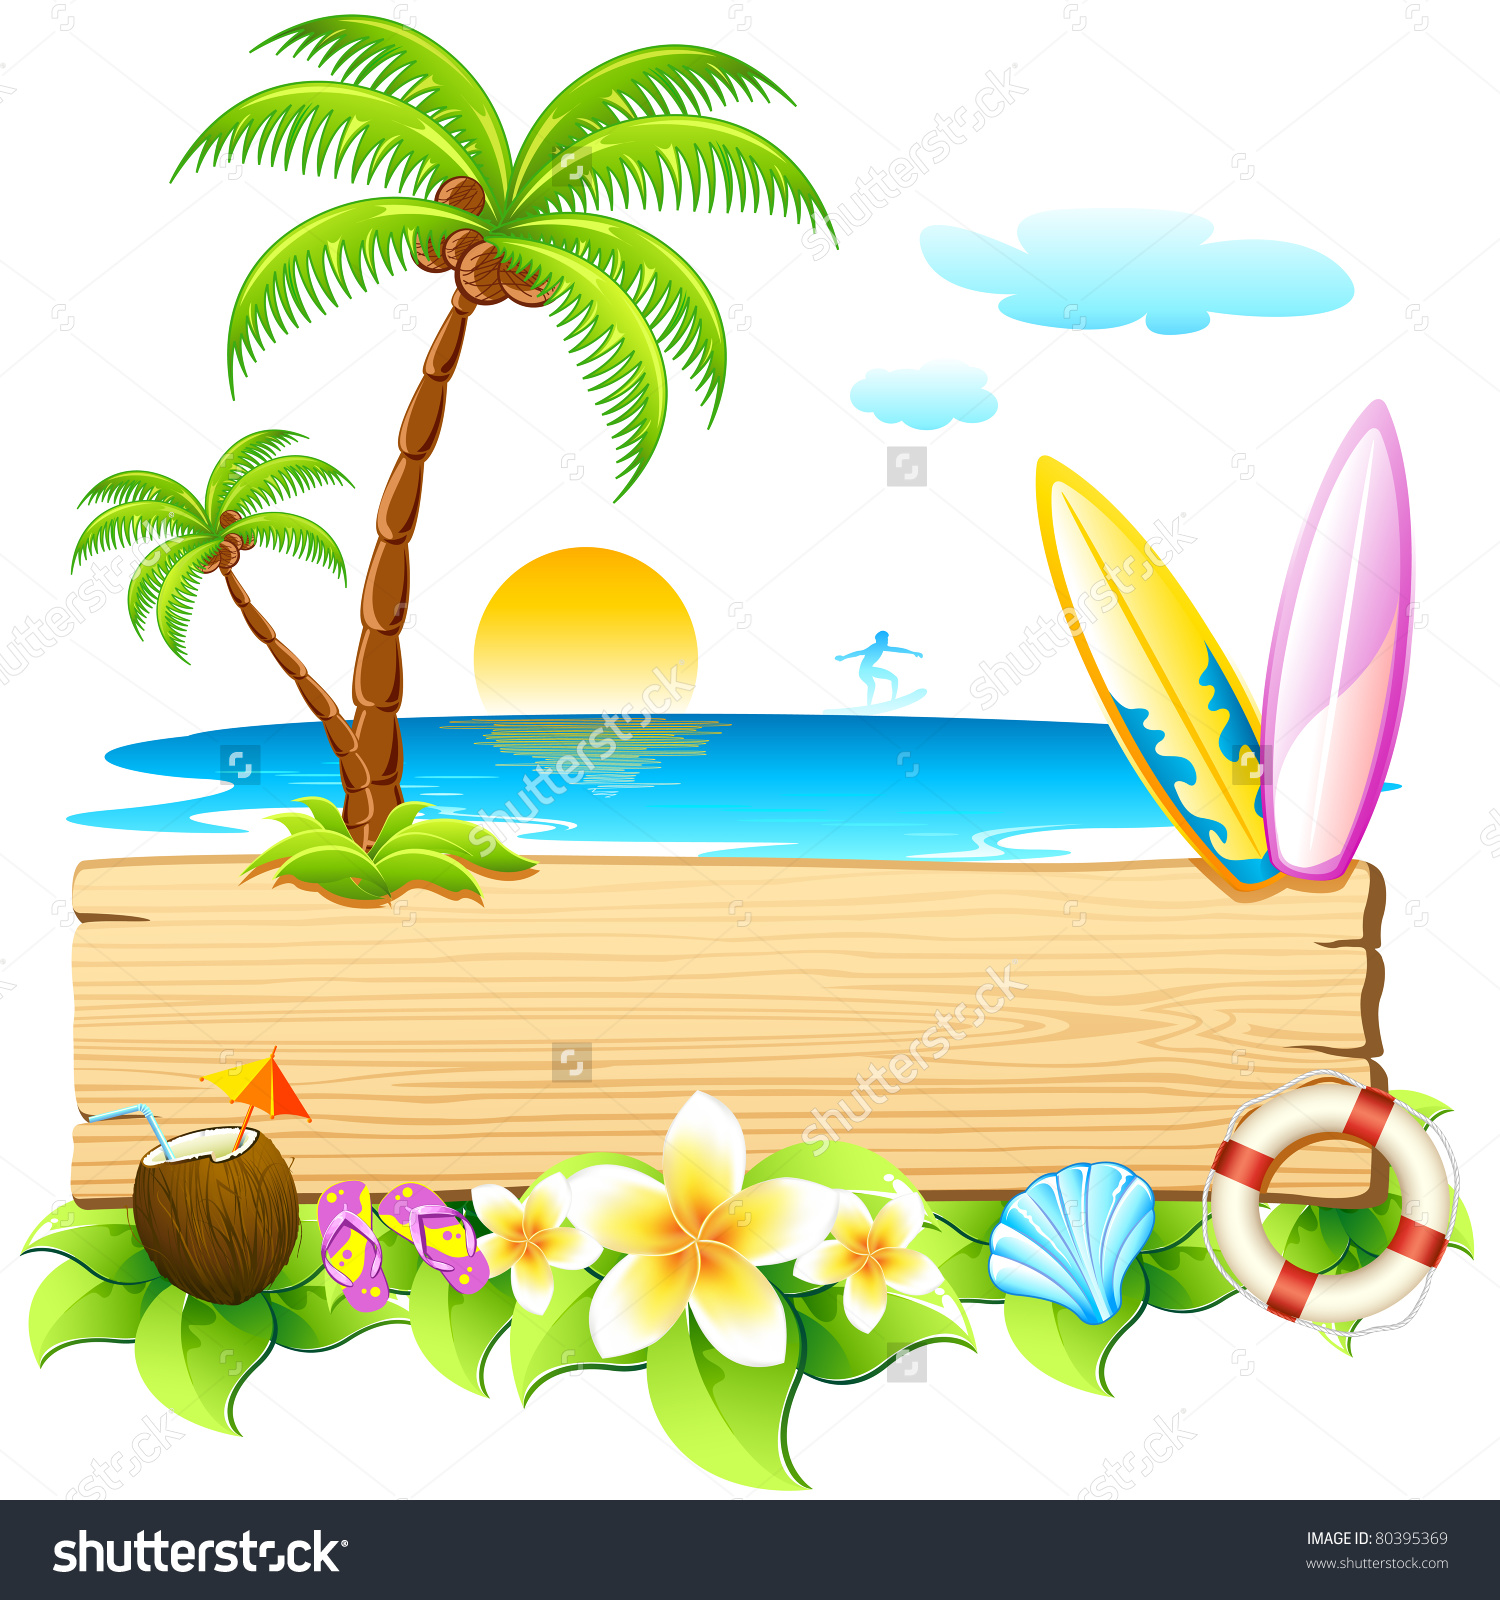 Surfboard clipart standing palm tree banner royalty free library Illustration Surf Board Palm Tree On Stock Vector 80395369 ... banner royalty free library